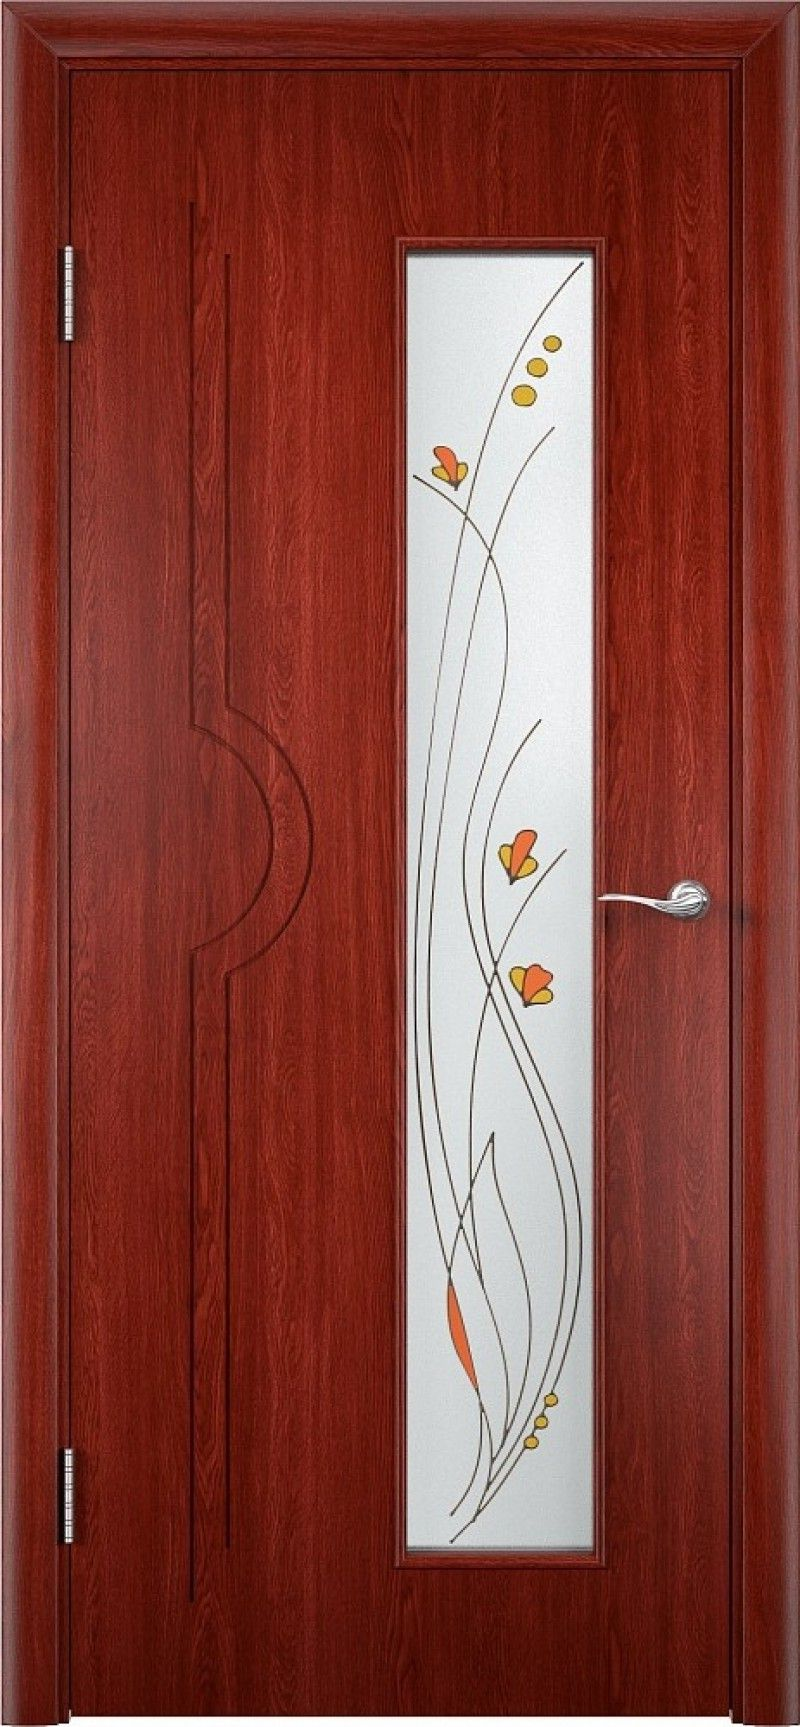 Beautiful modern door trim